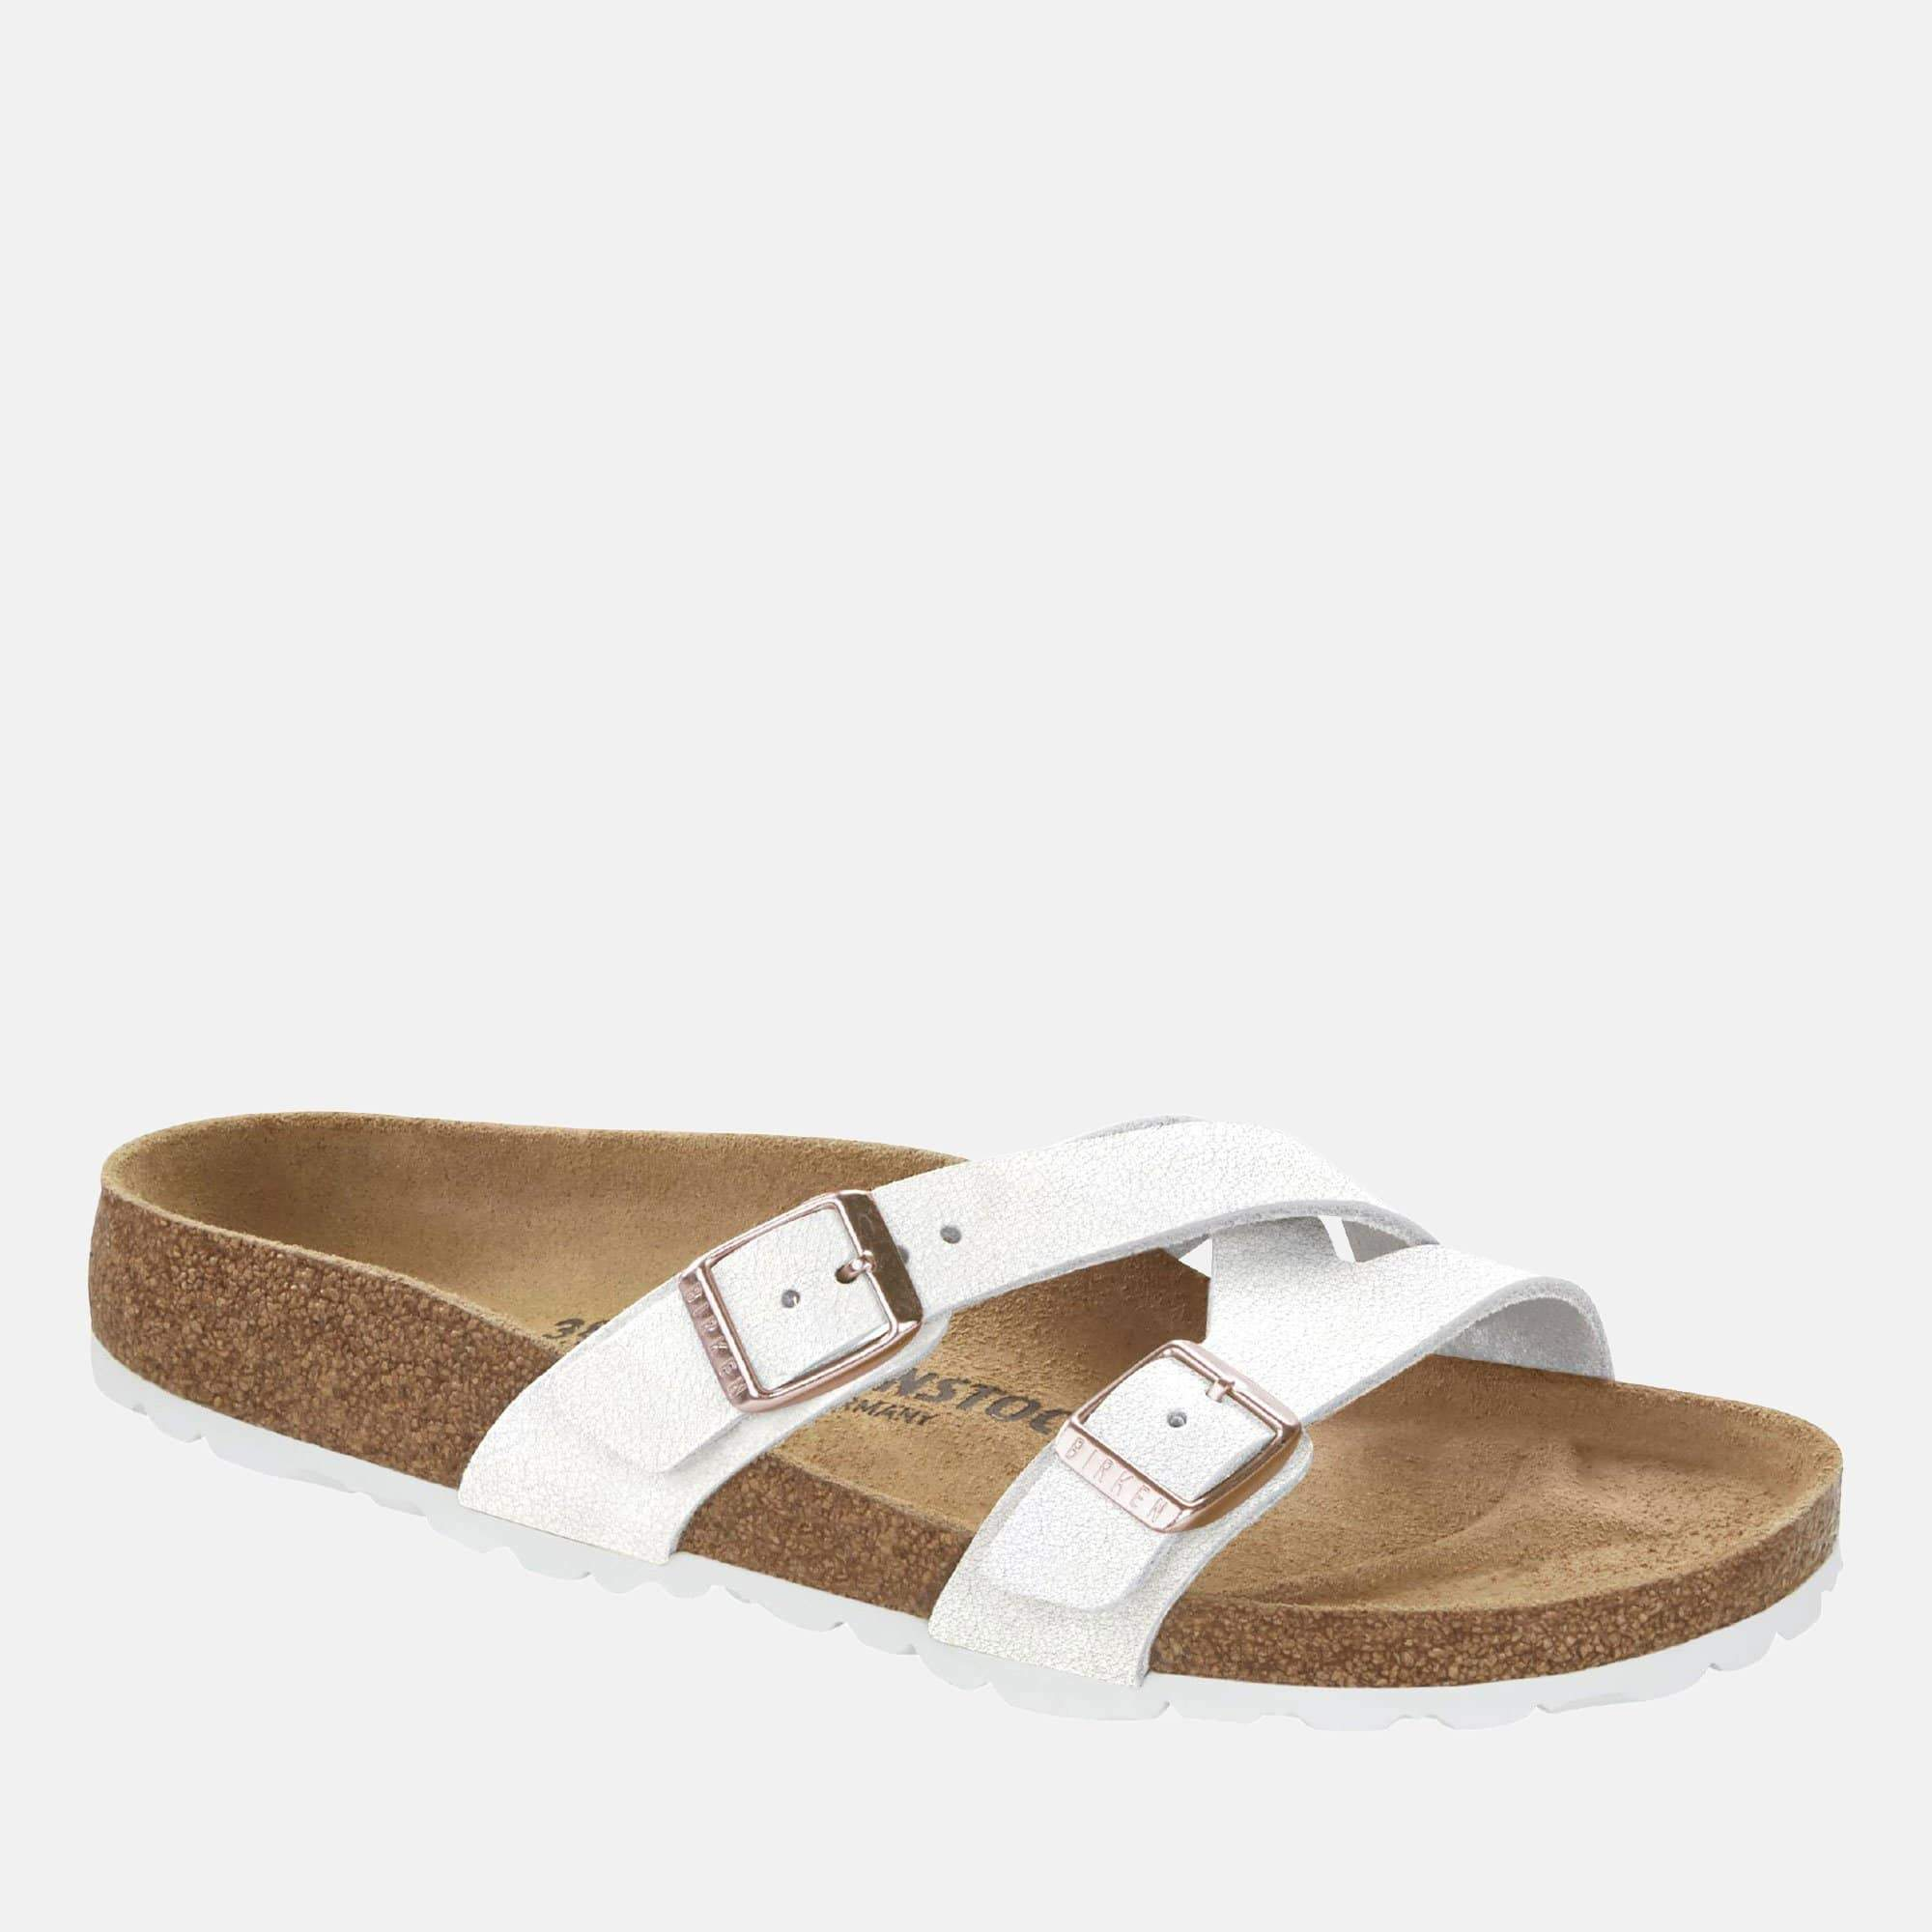 Birkenstock Footwear Yao Balance Regular Fit White 1016688